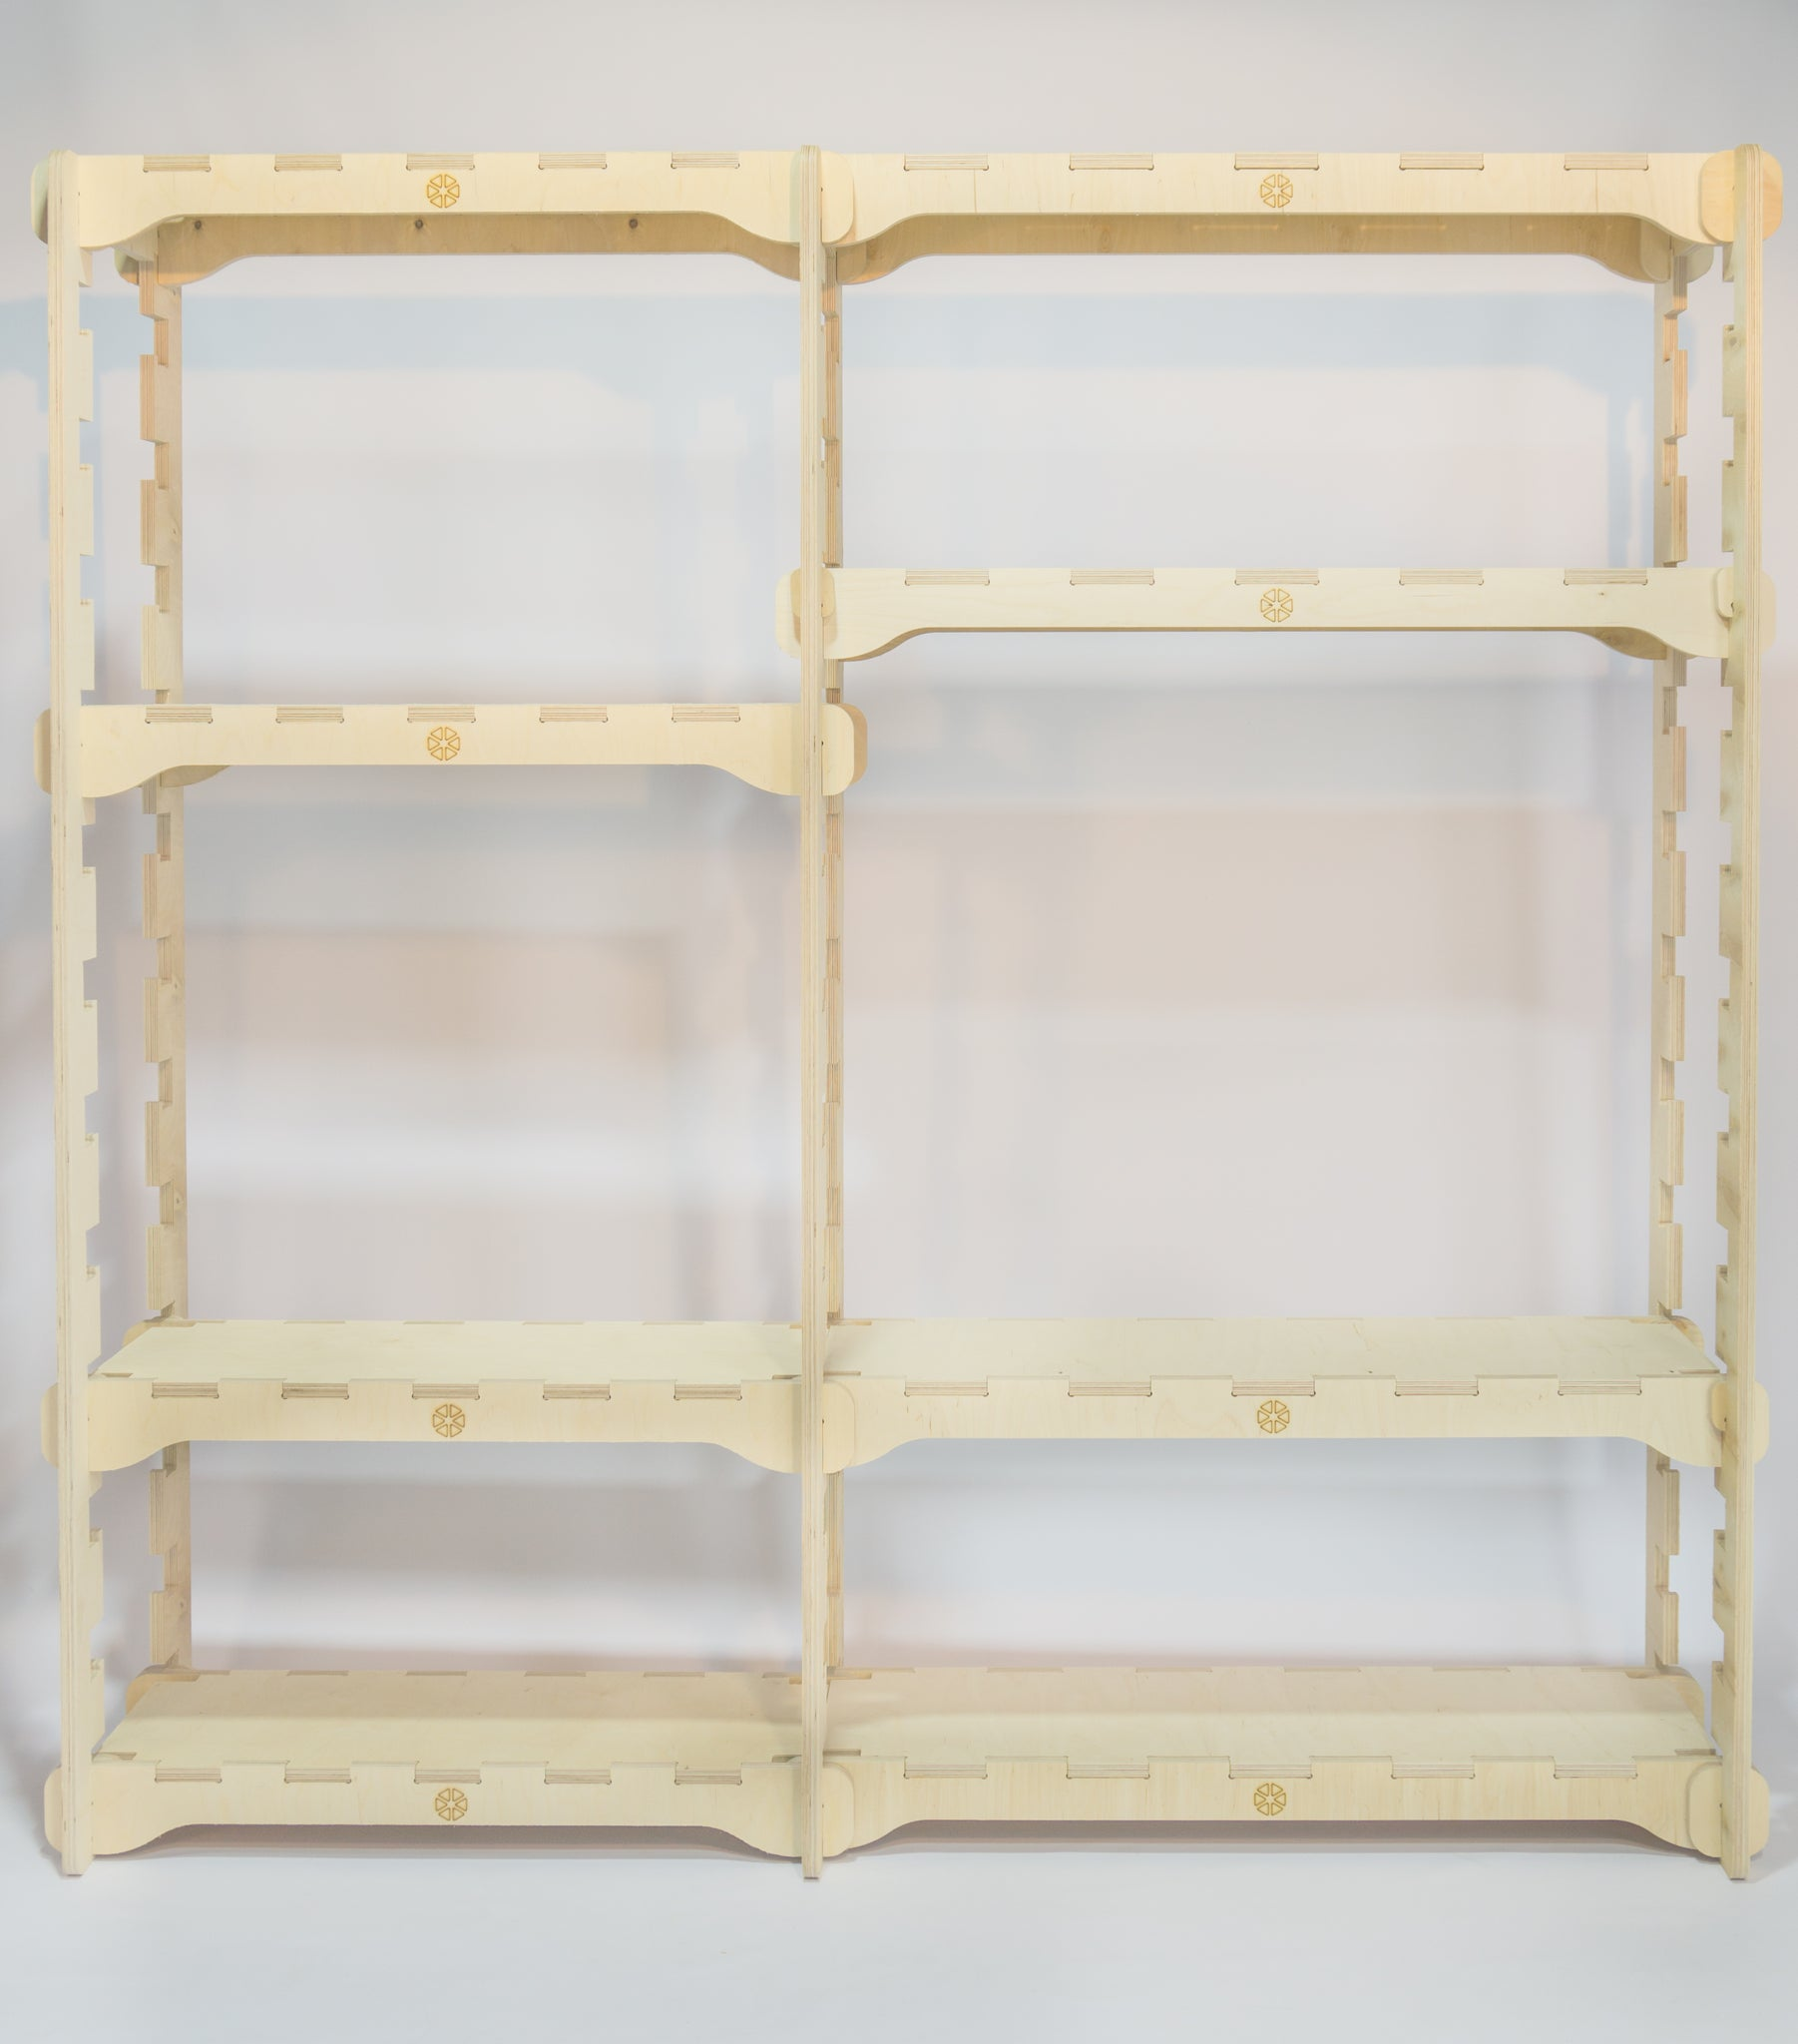 Storage Shelf DXF file